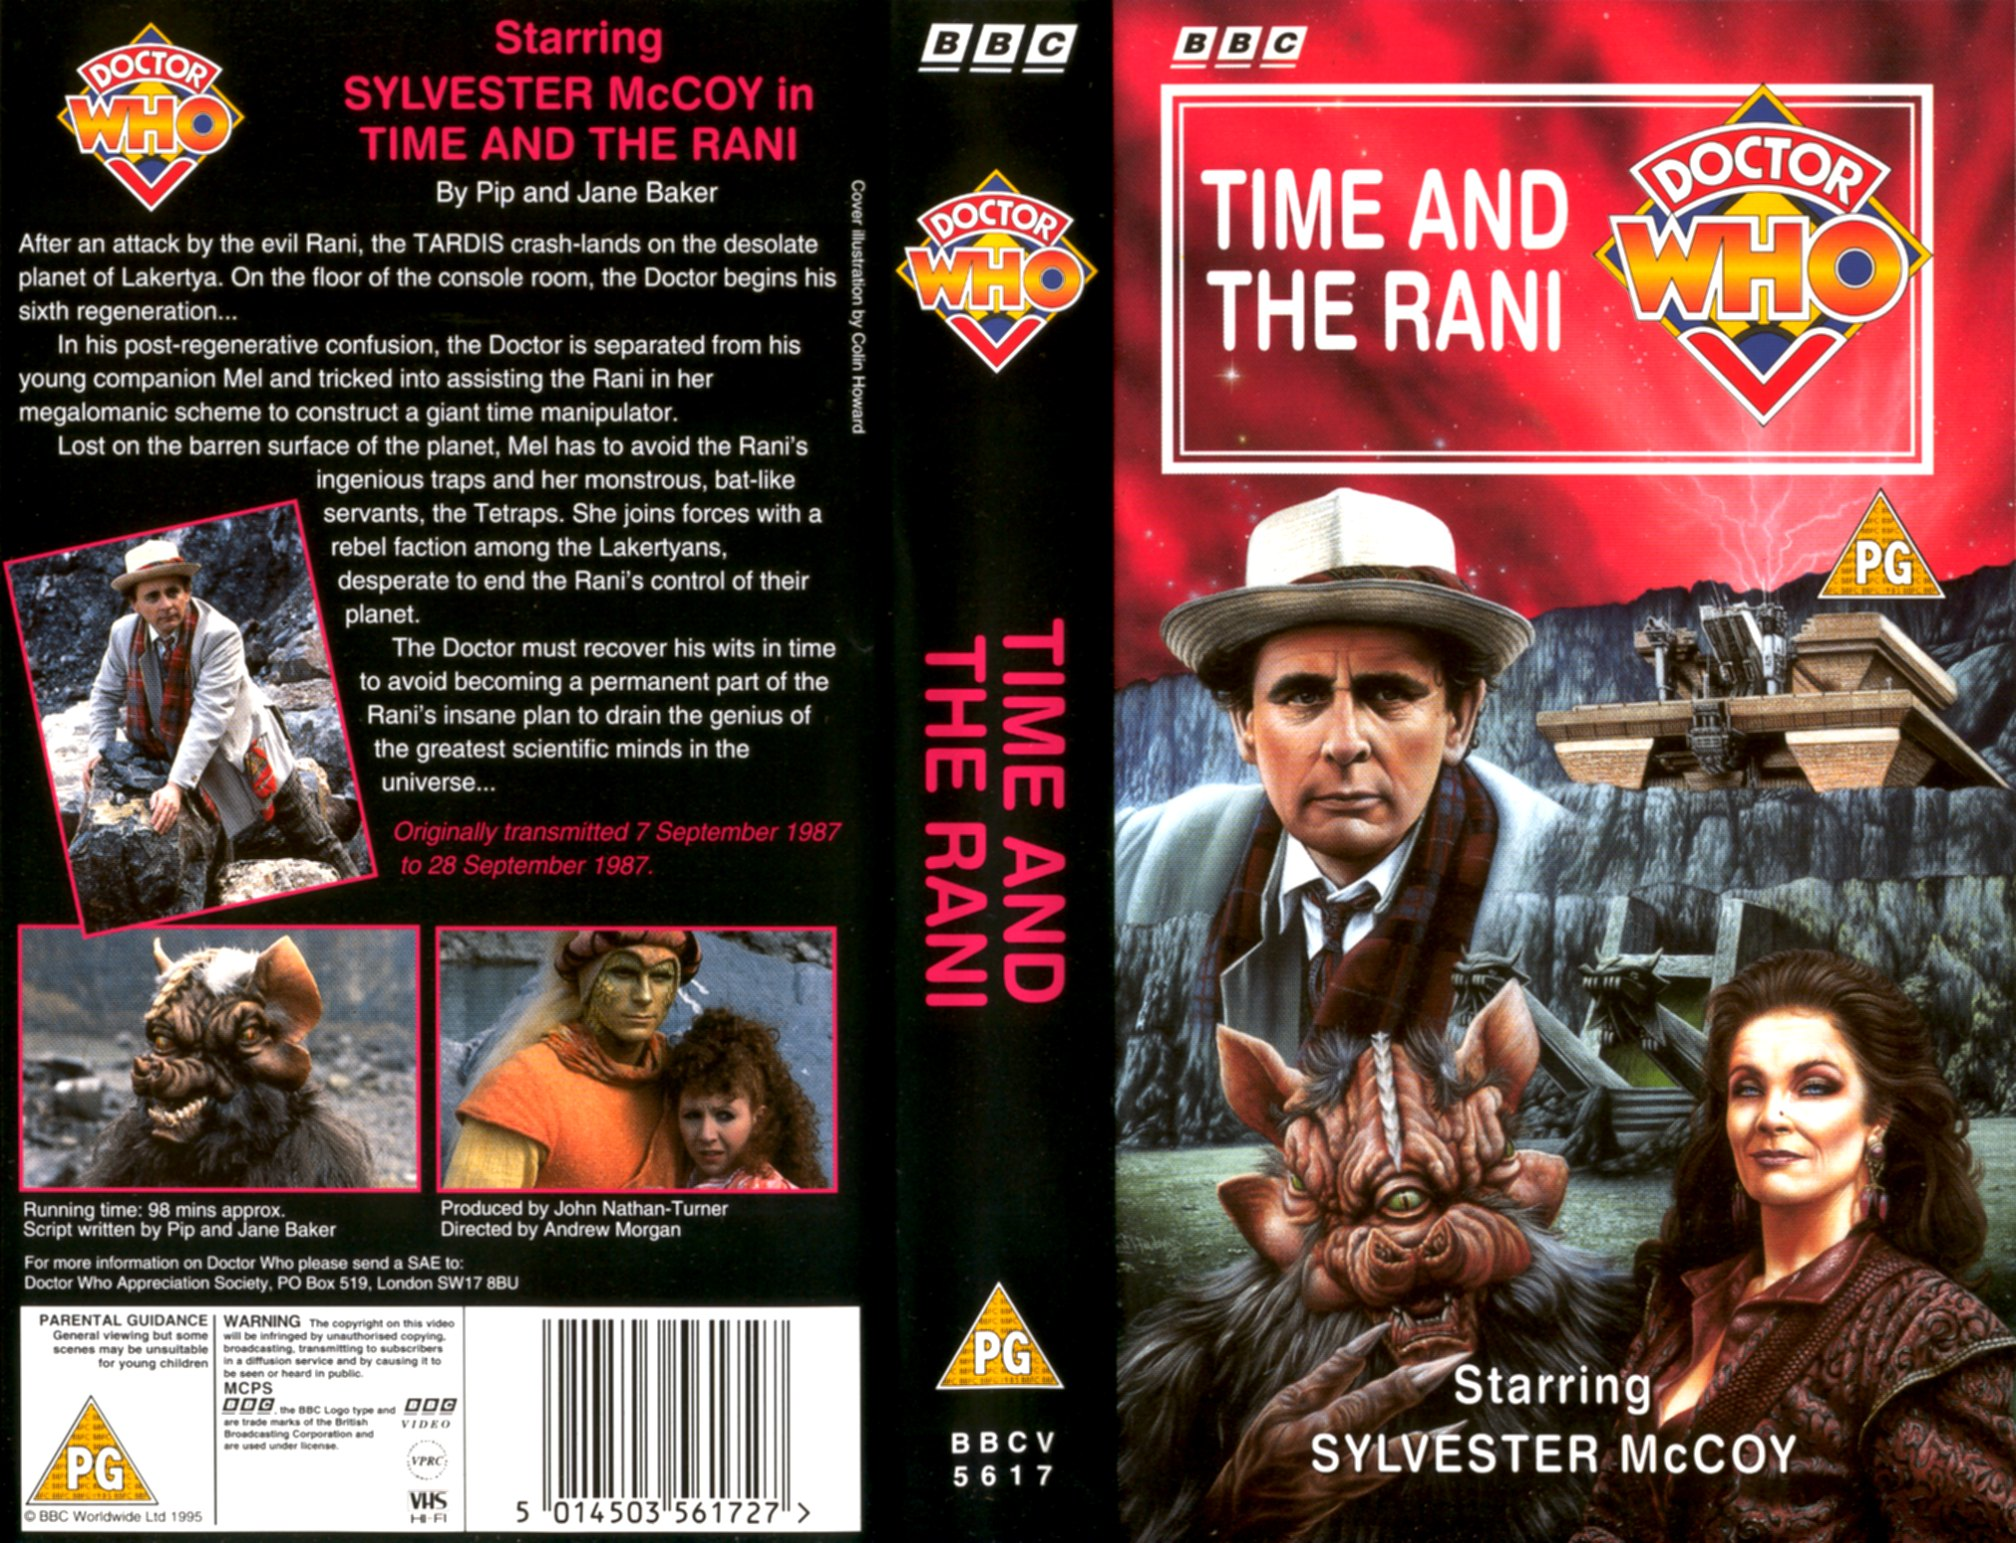 Time and the Rani VHS